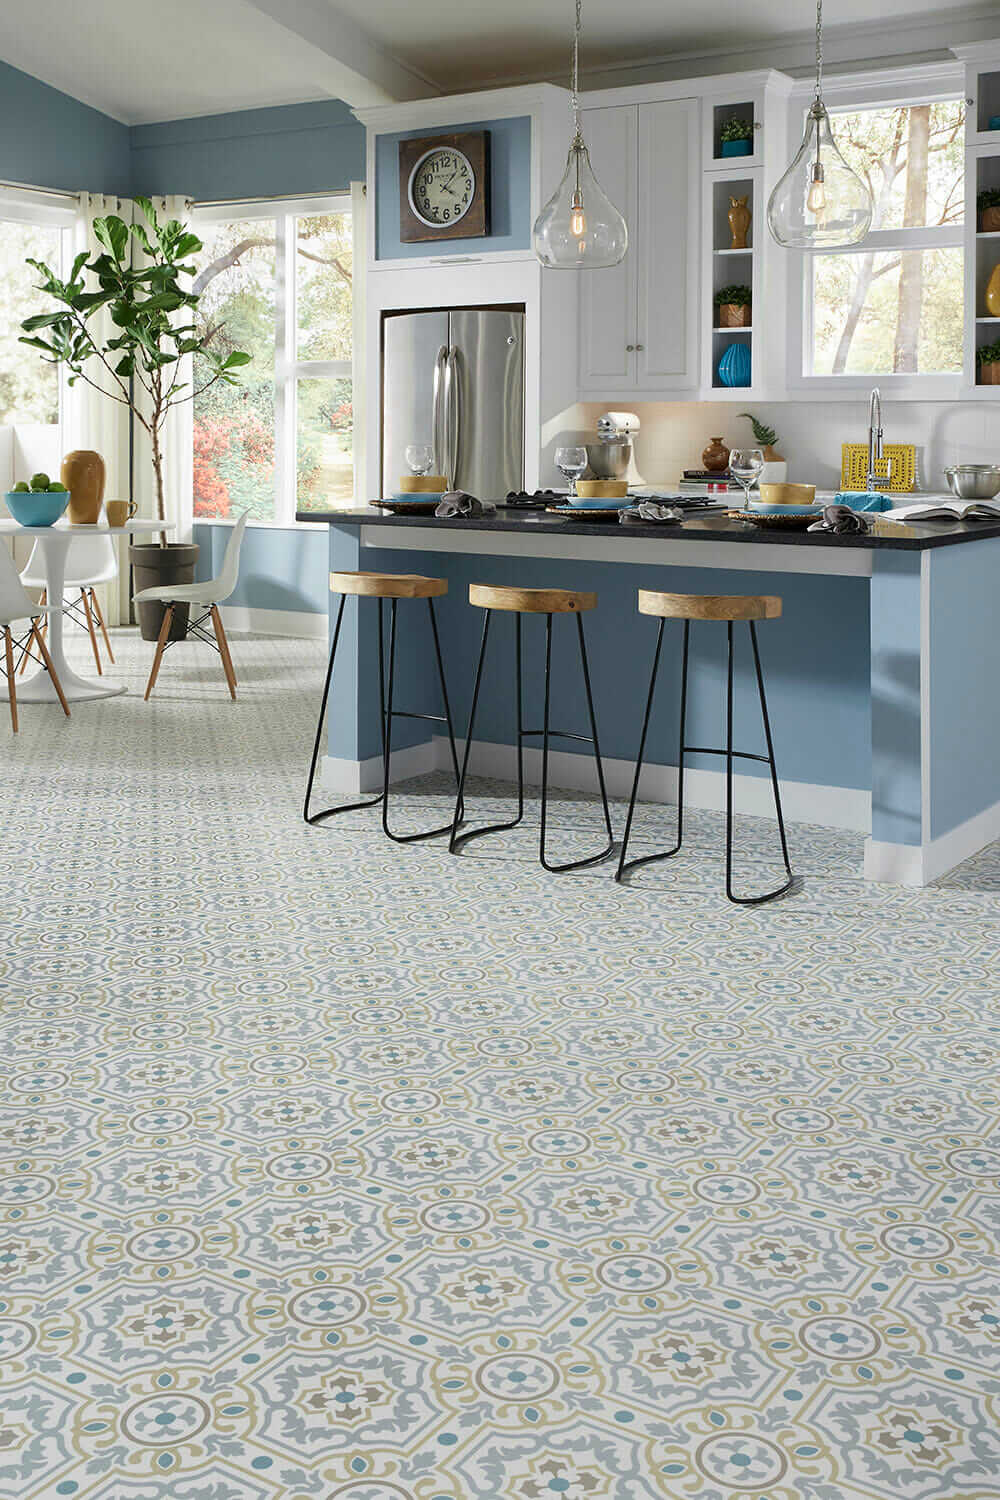 Do you want patterned vinyl or linoleum flooring i get a fair number of questions from readers asking where to find it and the pickins are slim